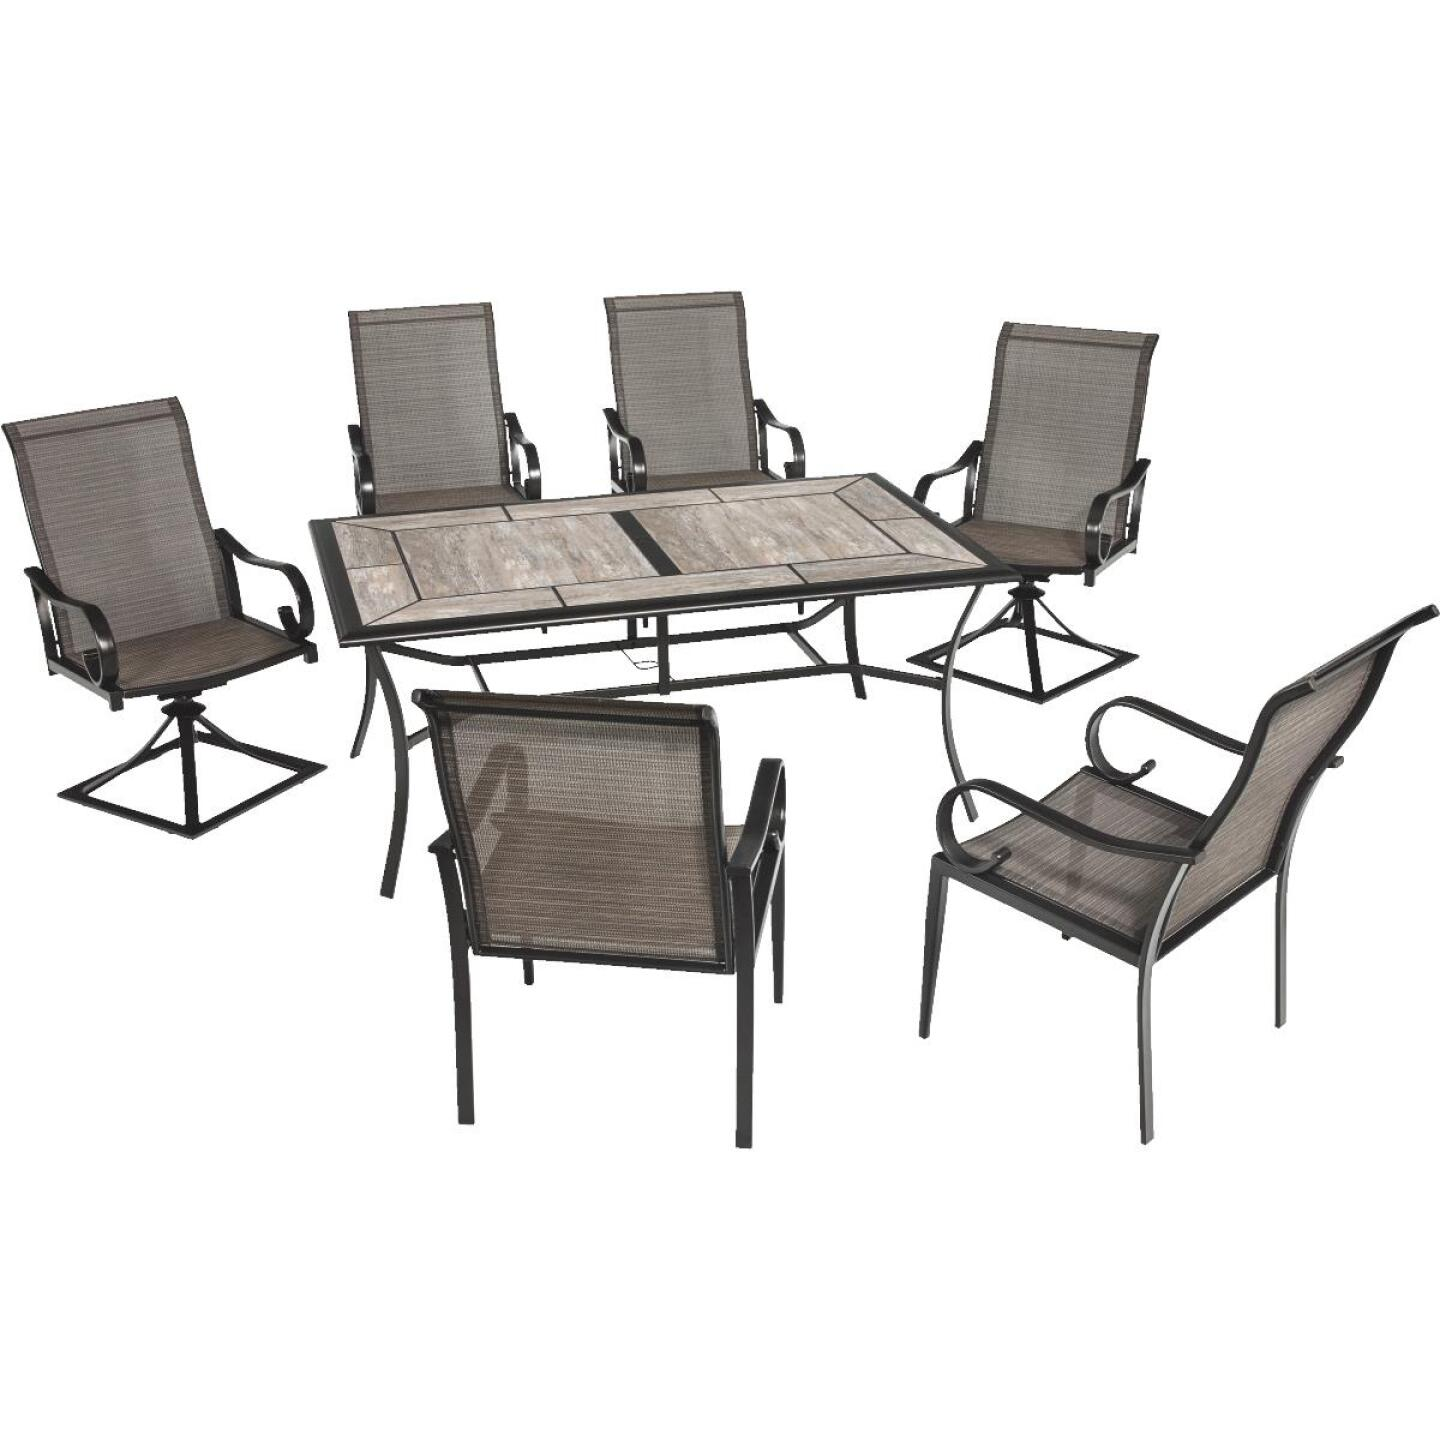 Outdoor Expressions Berkshire 7-Piece Dining Set Image 302